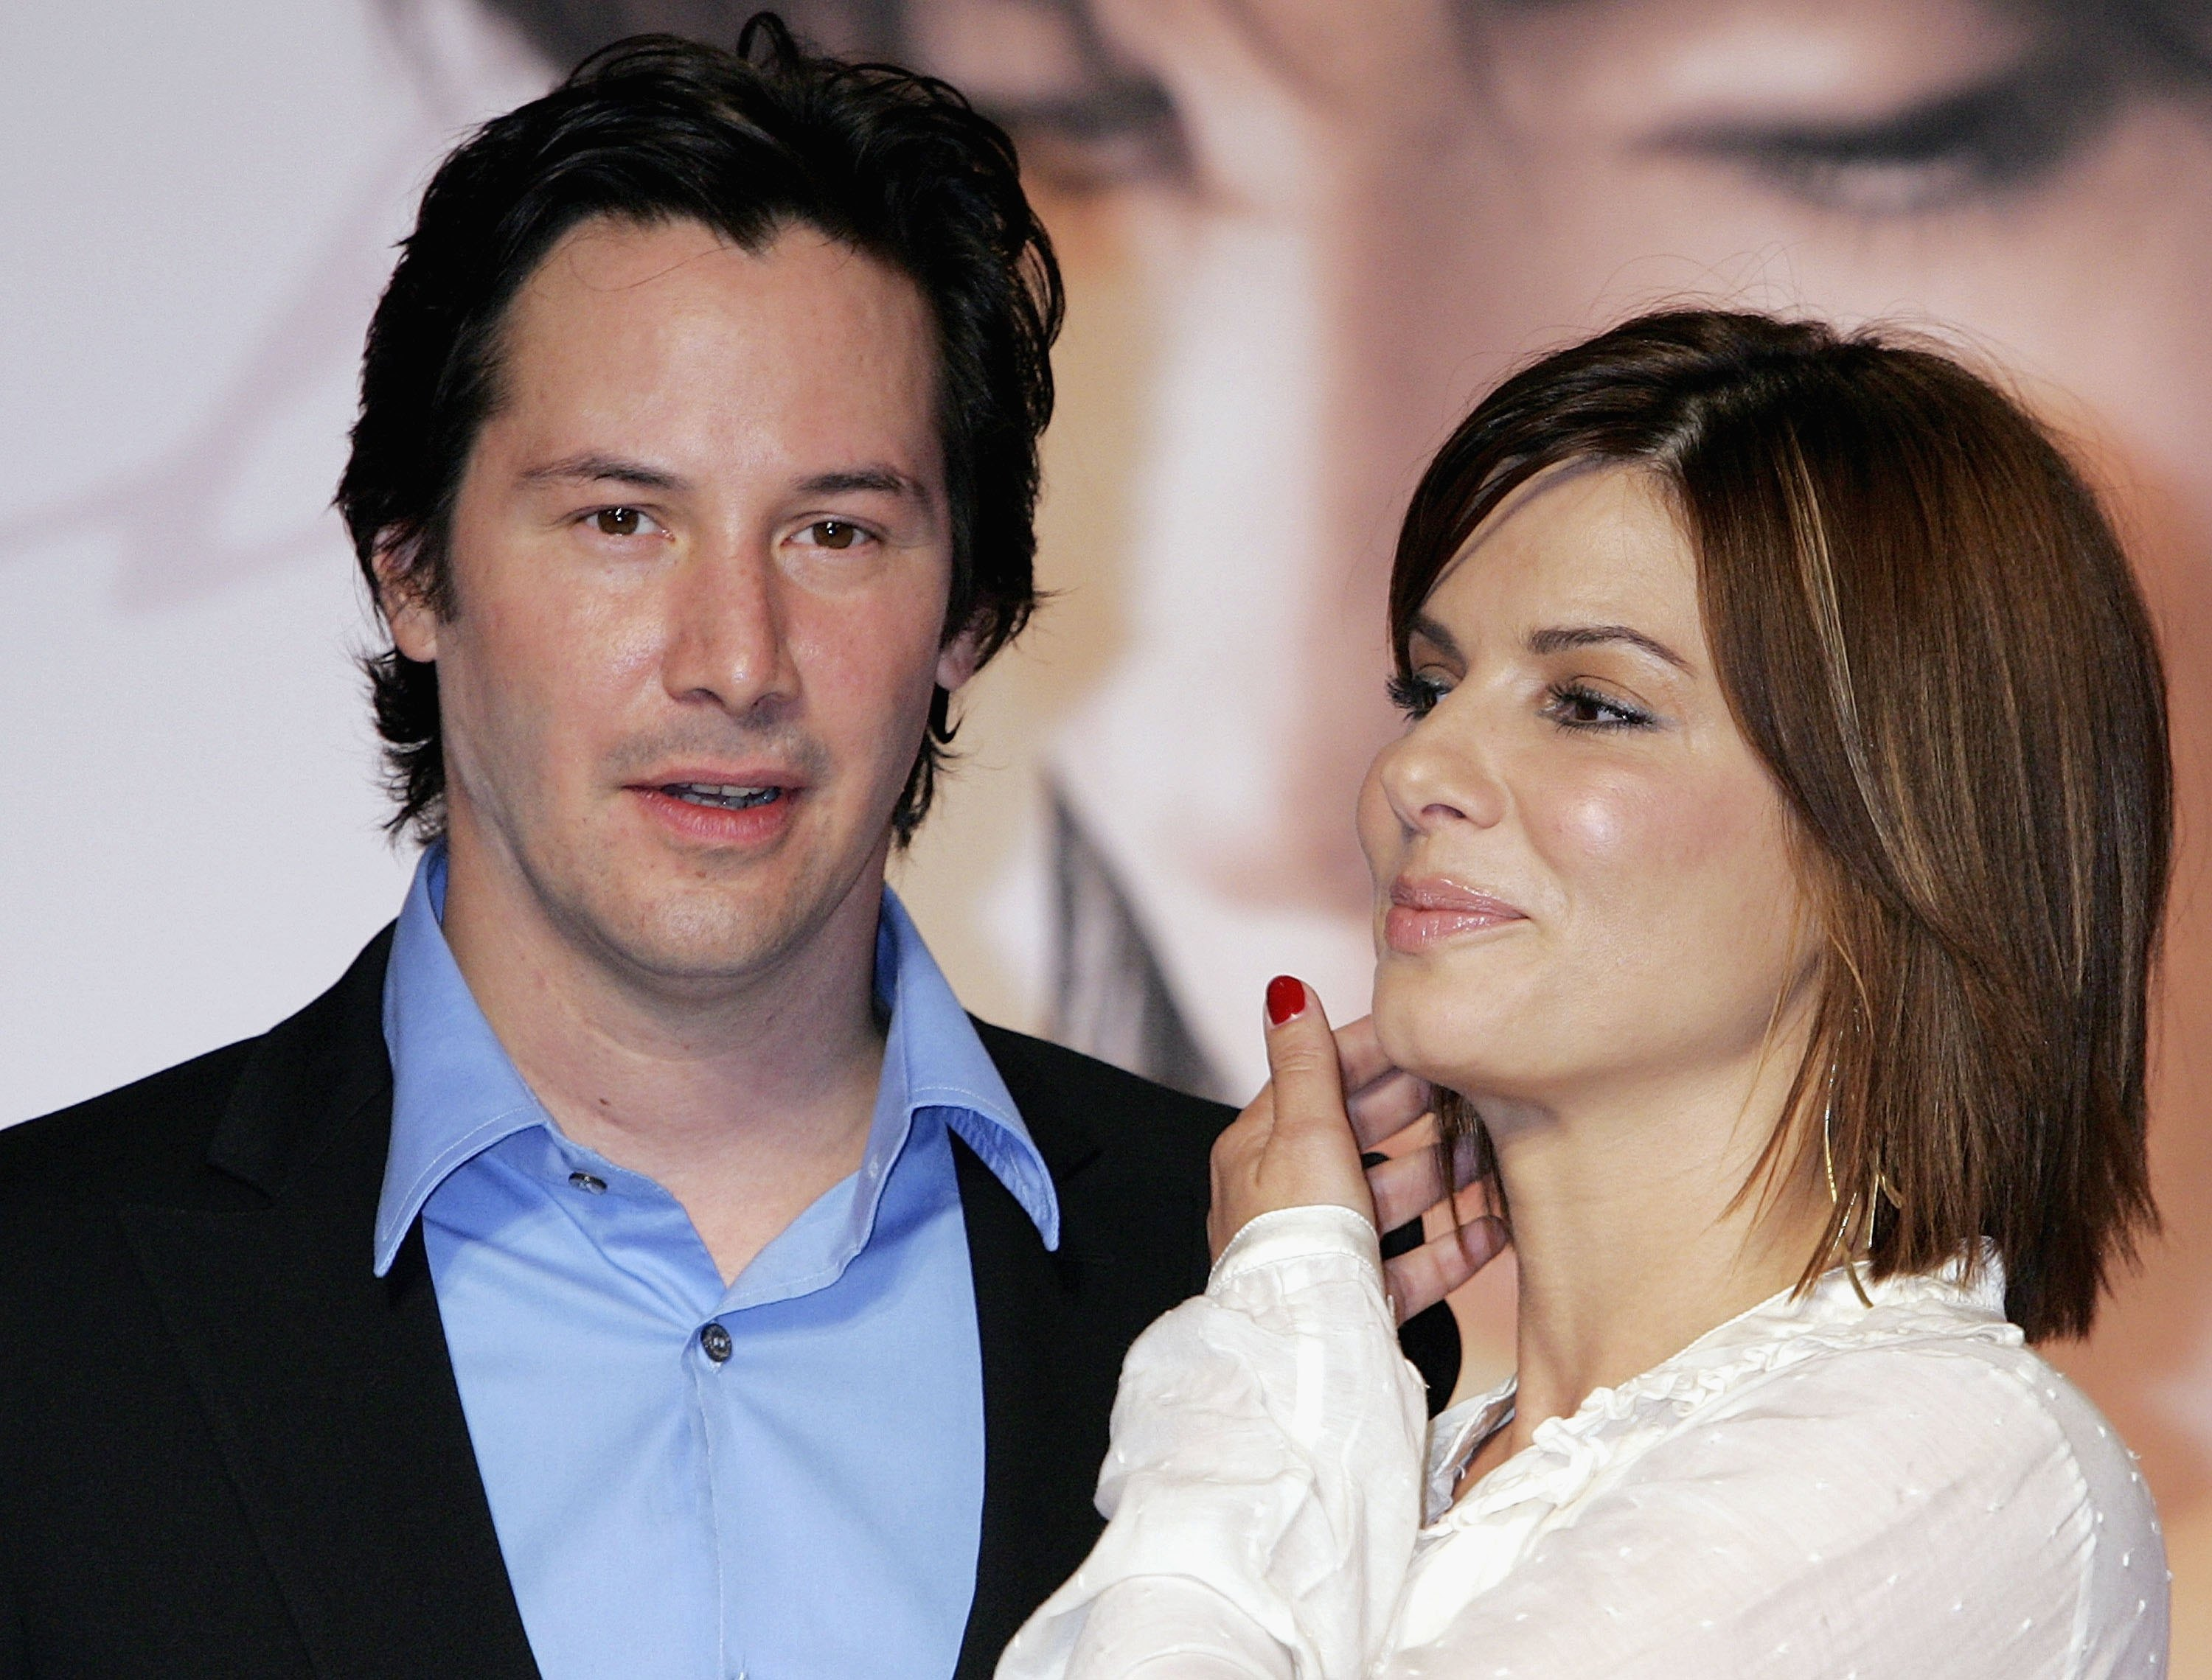 Actor Keanu Reeves and actress Sandra Bullock attend a press conference promoting 'The Lake House' on September 5, 2006, in Tokyo, Japan. (Getty Images)